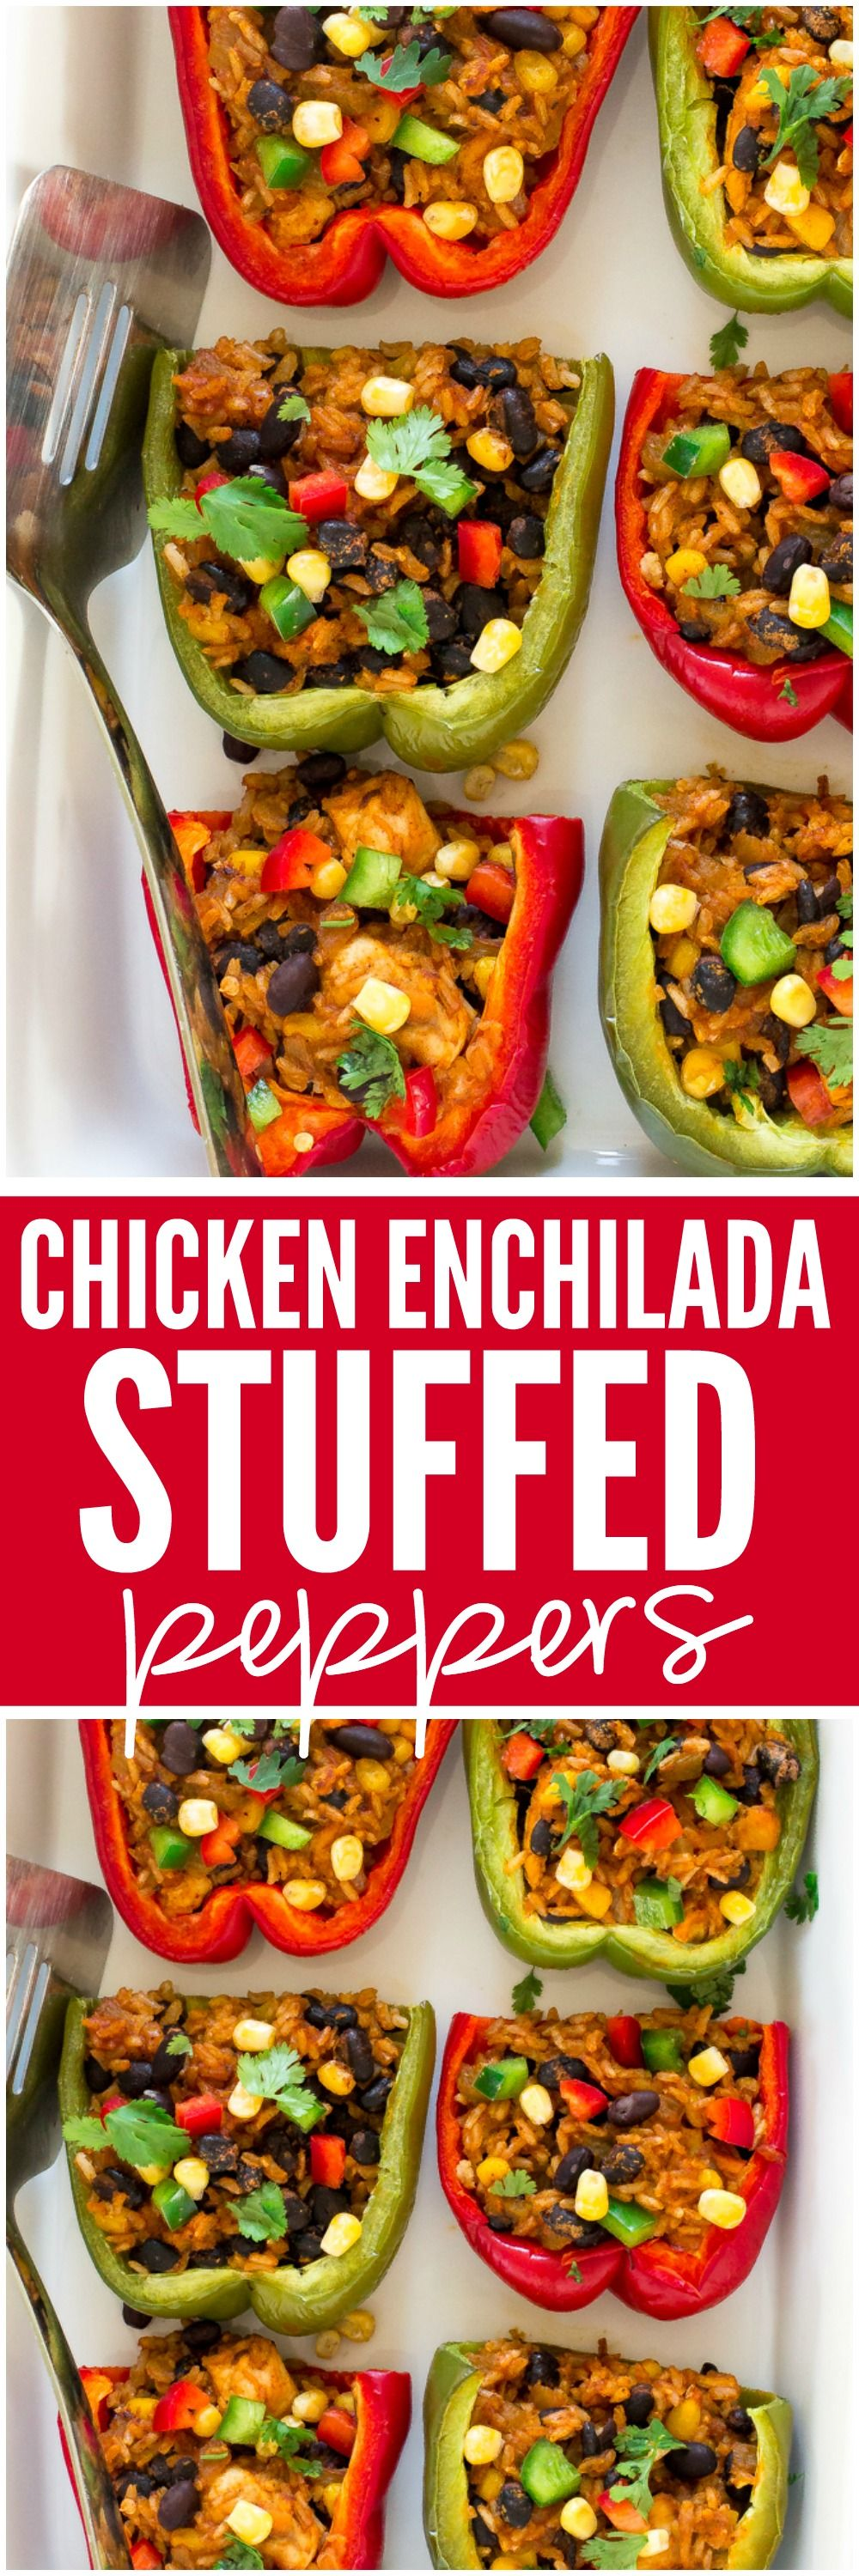 Chicken Enchilada Stuffed Peppers. Loaded with brown rice, enchilada sauce, chicken, corn and black beans!